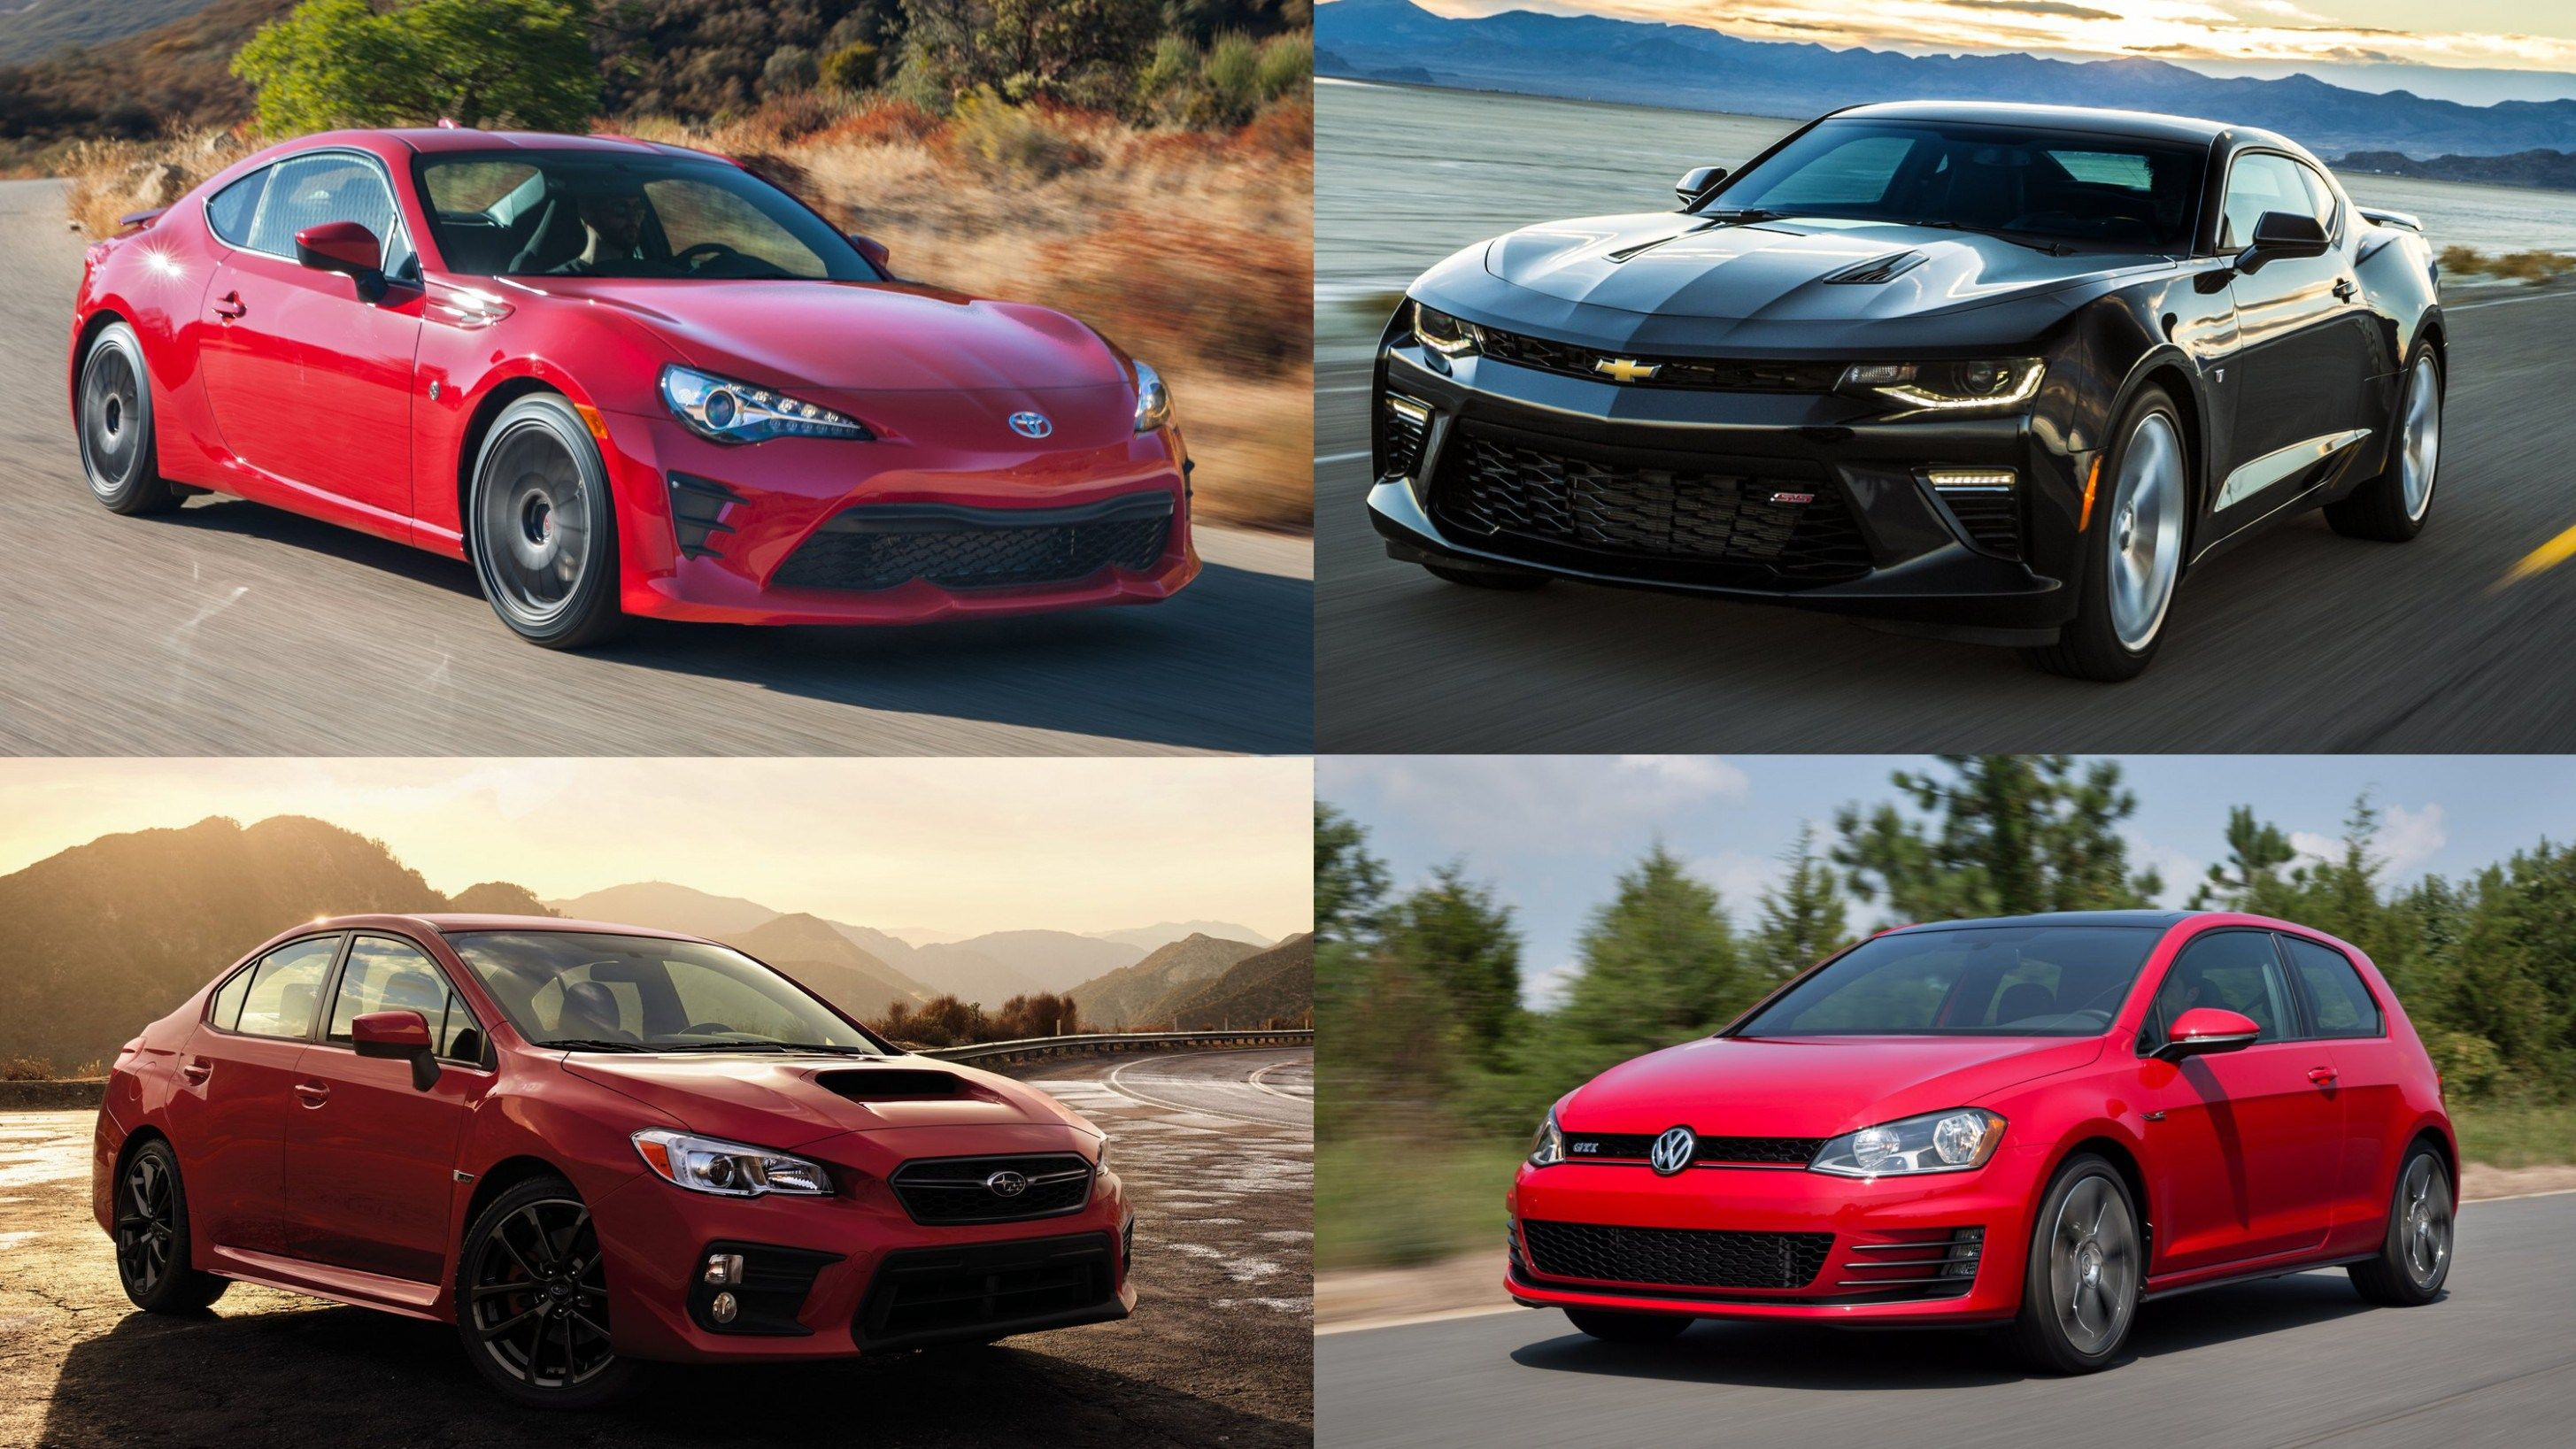 small resolution of whats so trendy about affordable sporty cars that everyone went crazy over it affordable